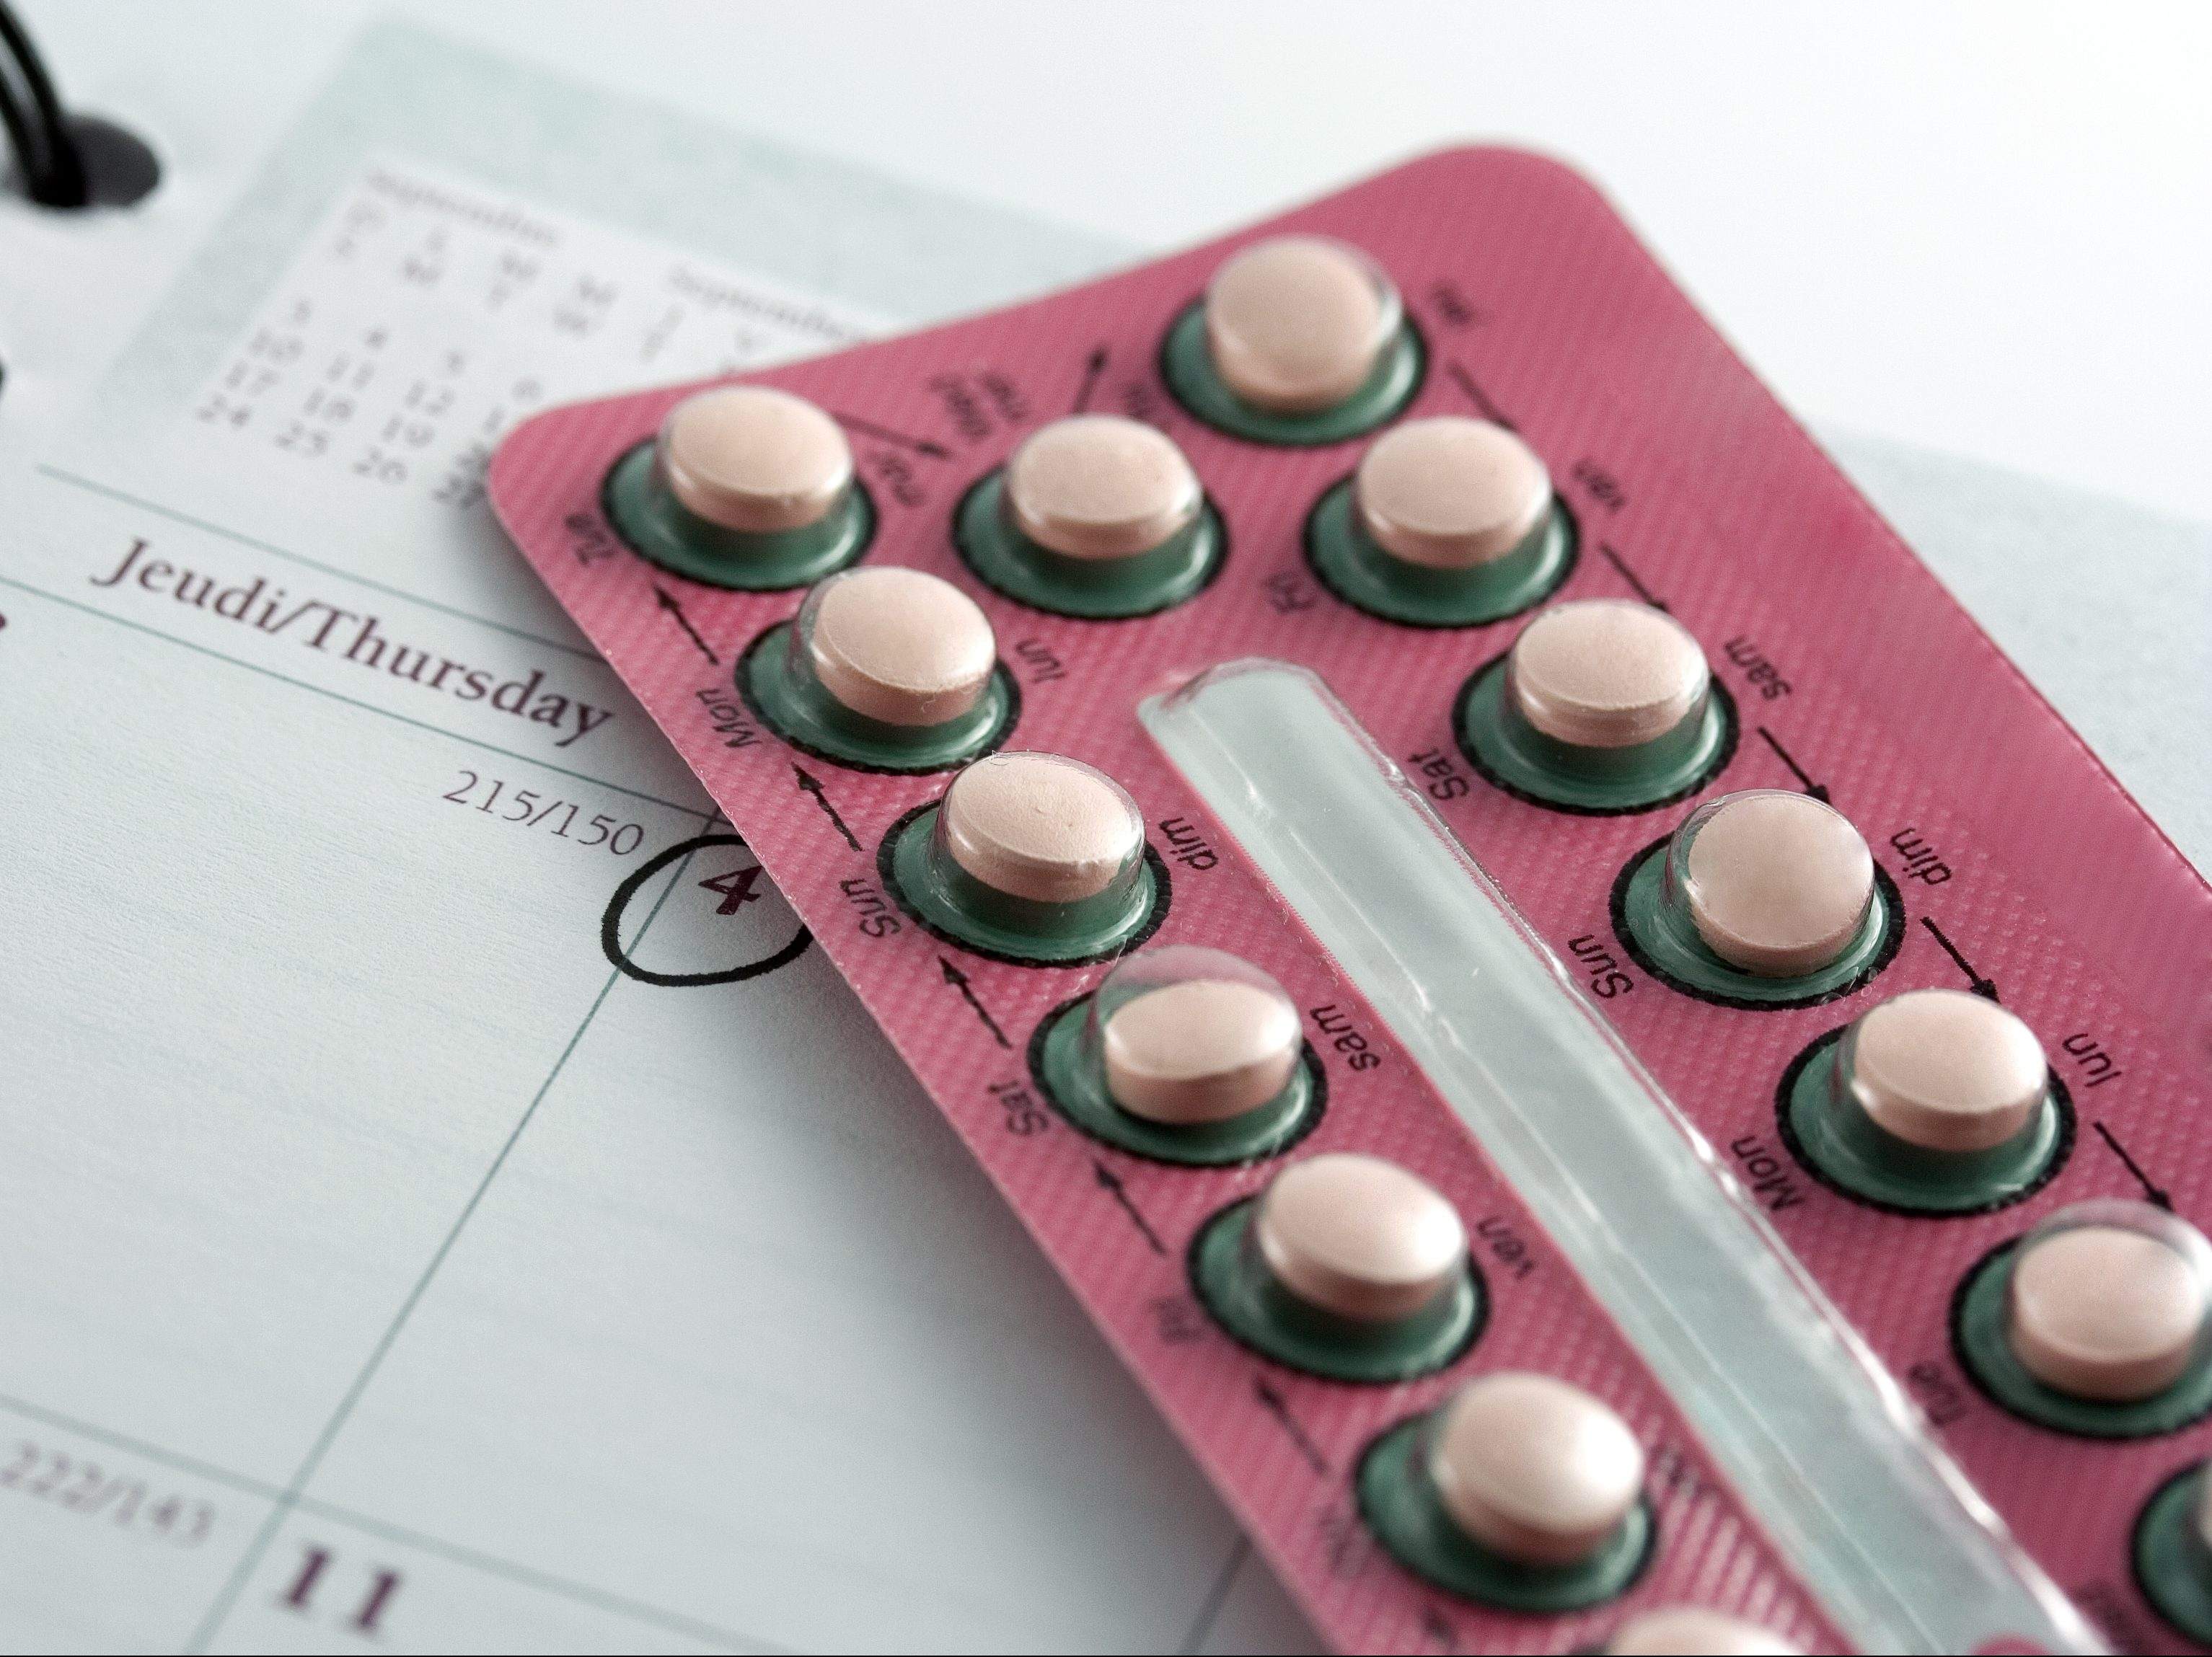 alesse - birth control pills